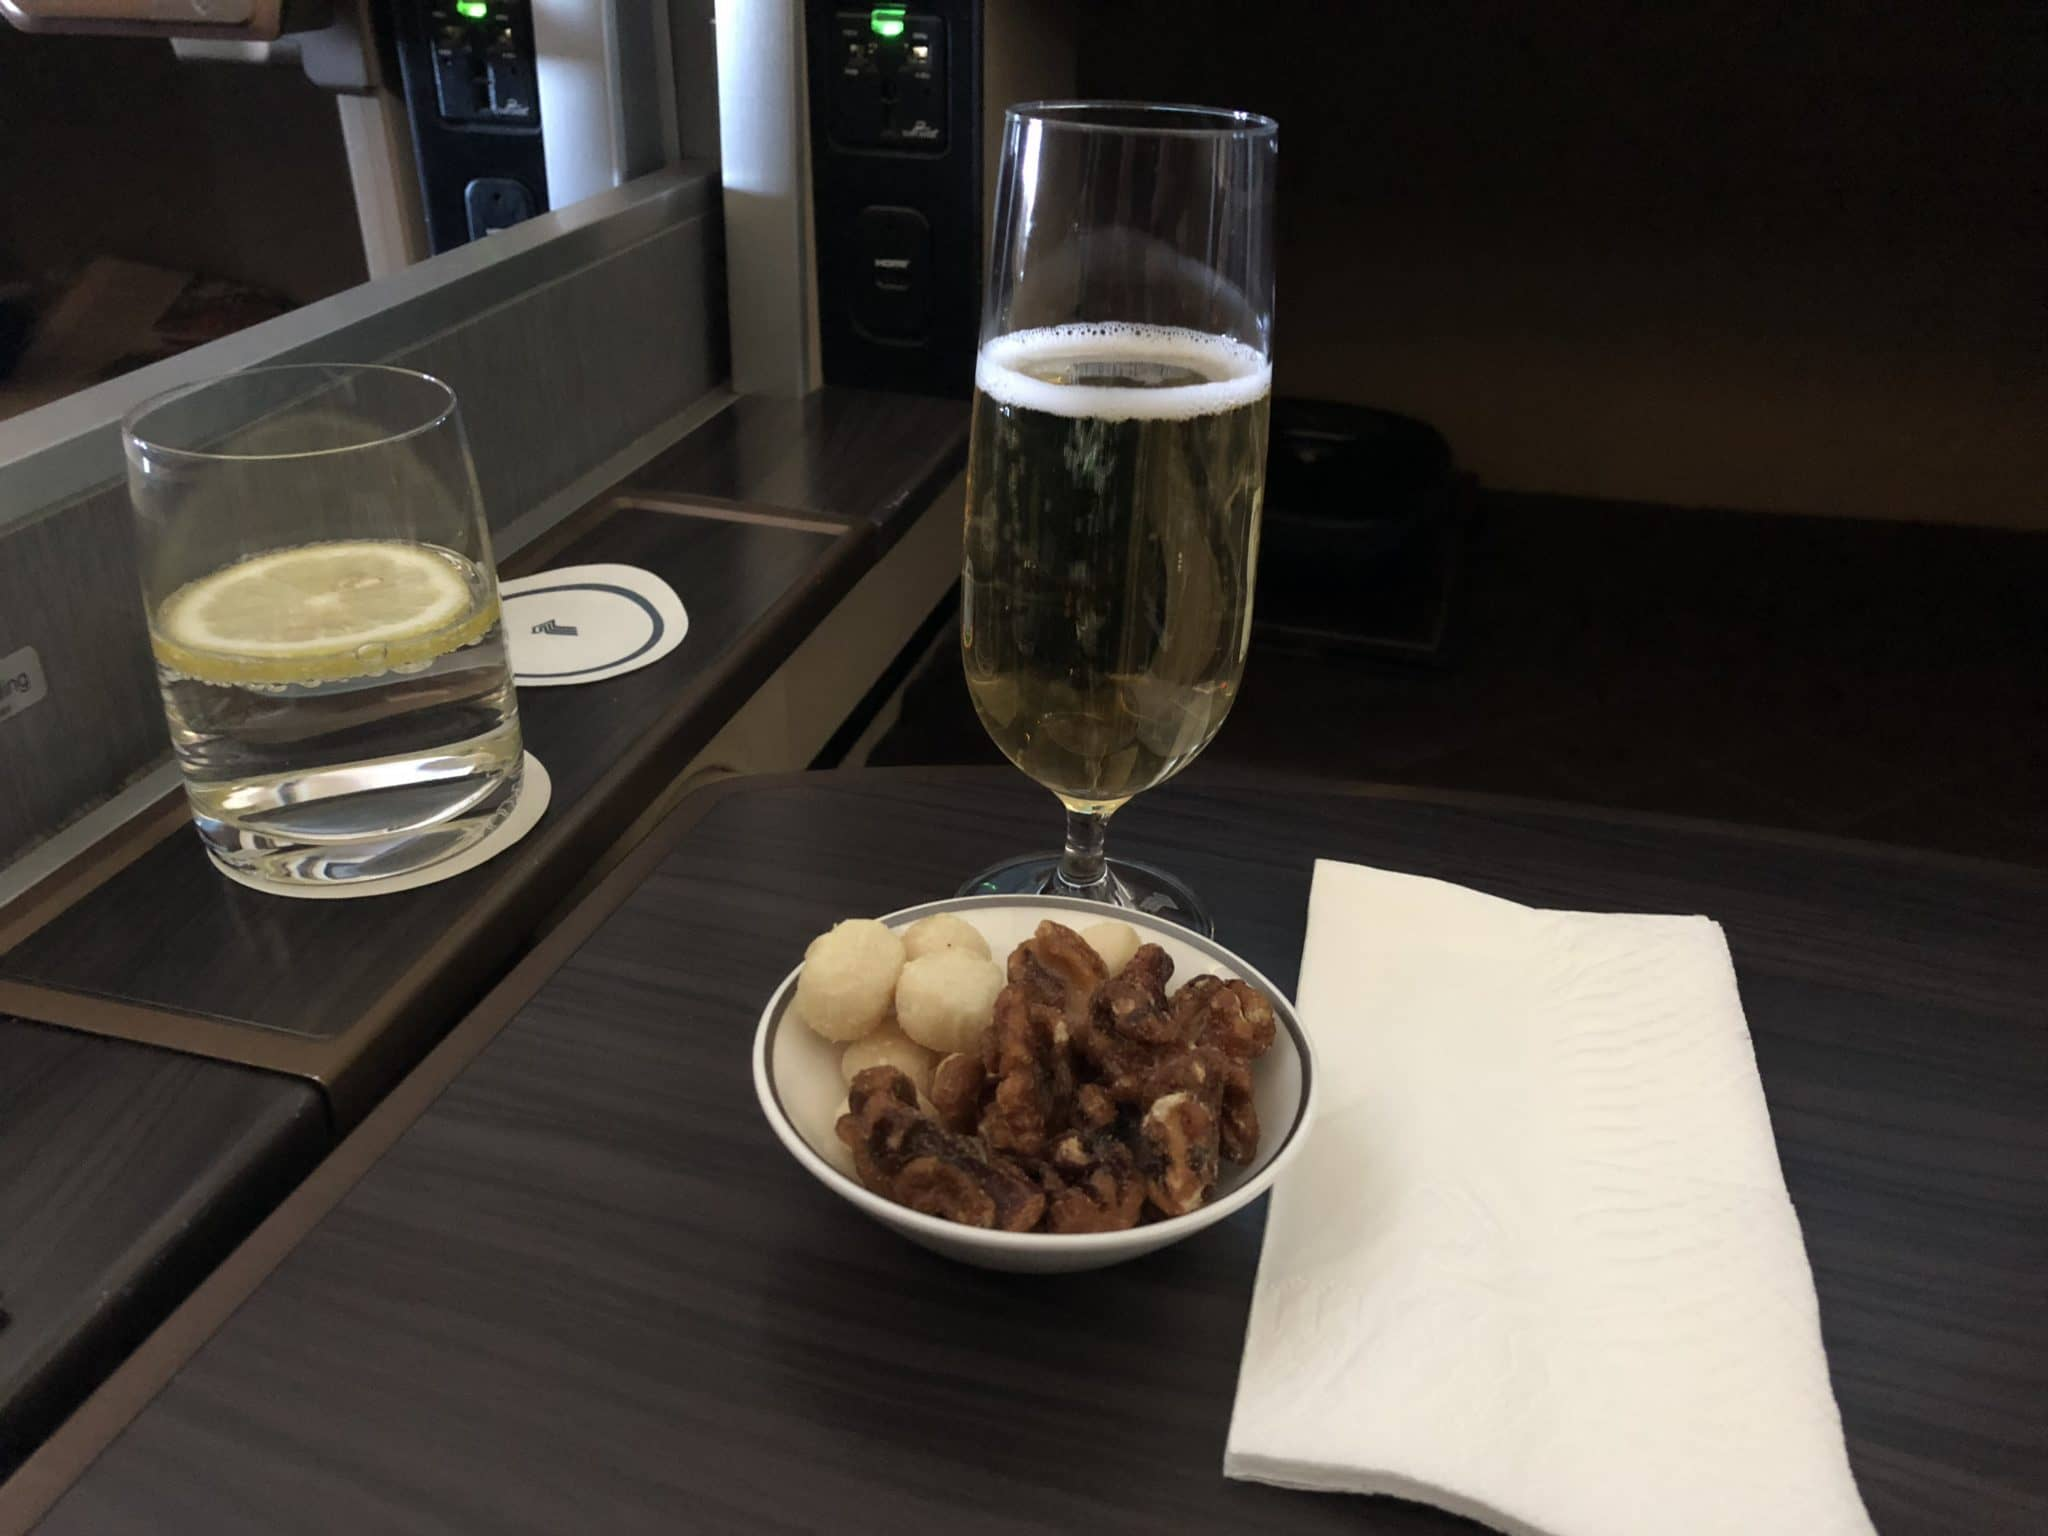 Singapore Airlines First Class Boeing 777-300 Champagner und Nuesse